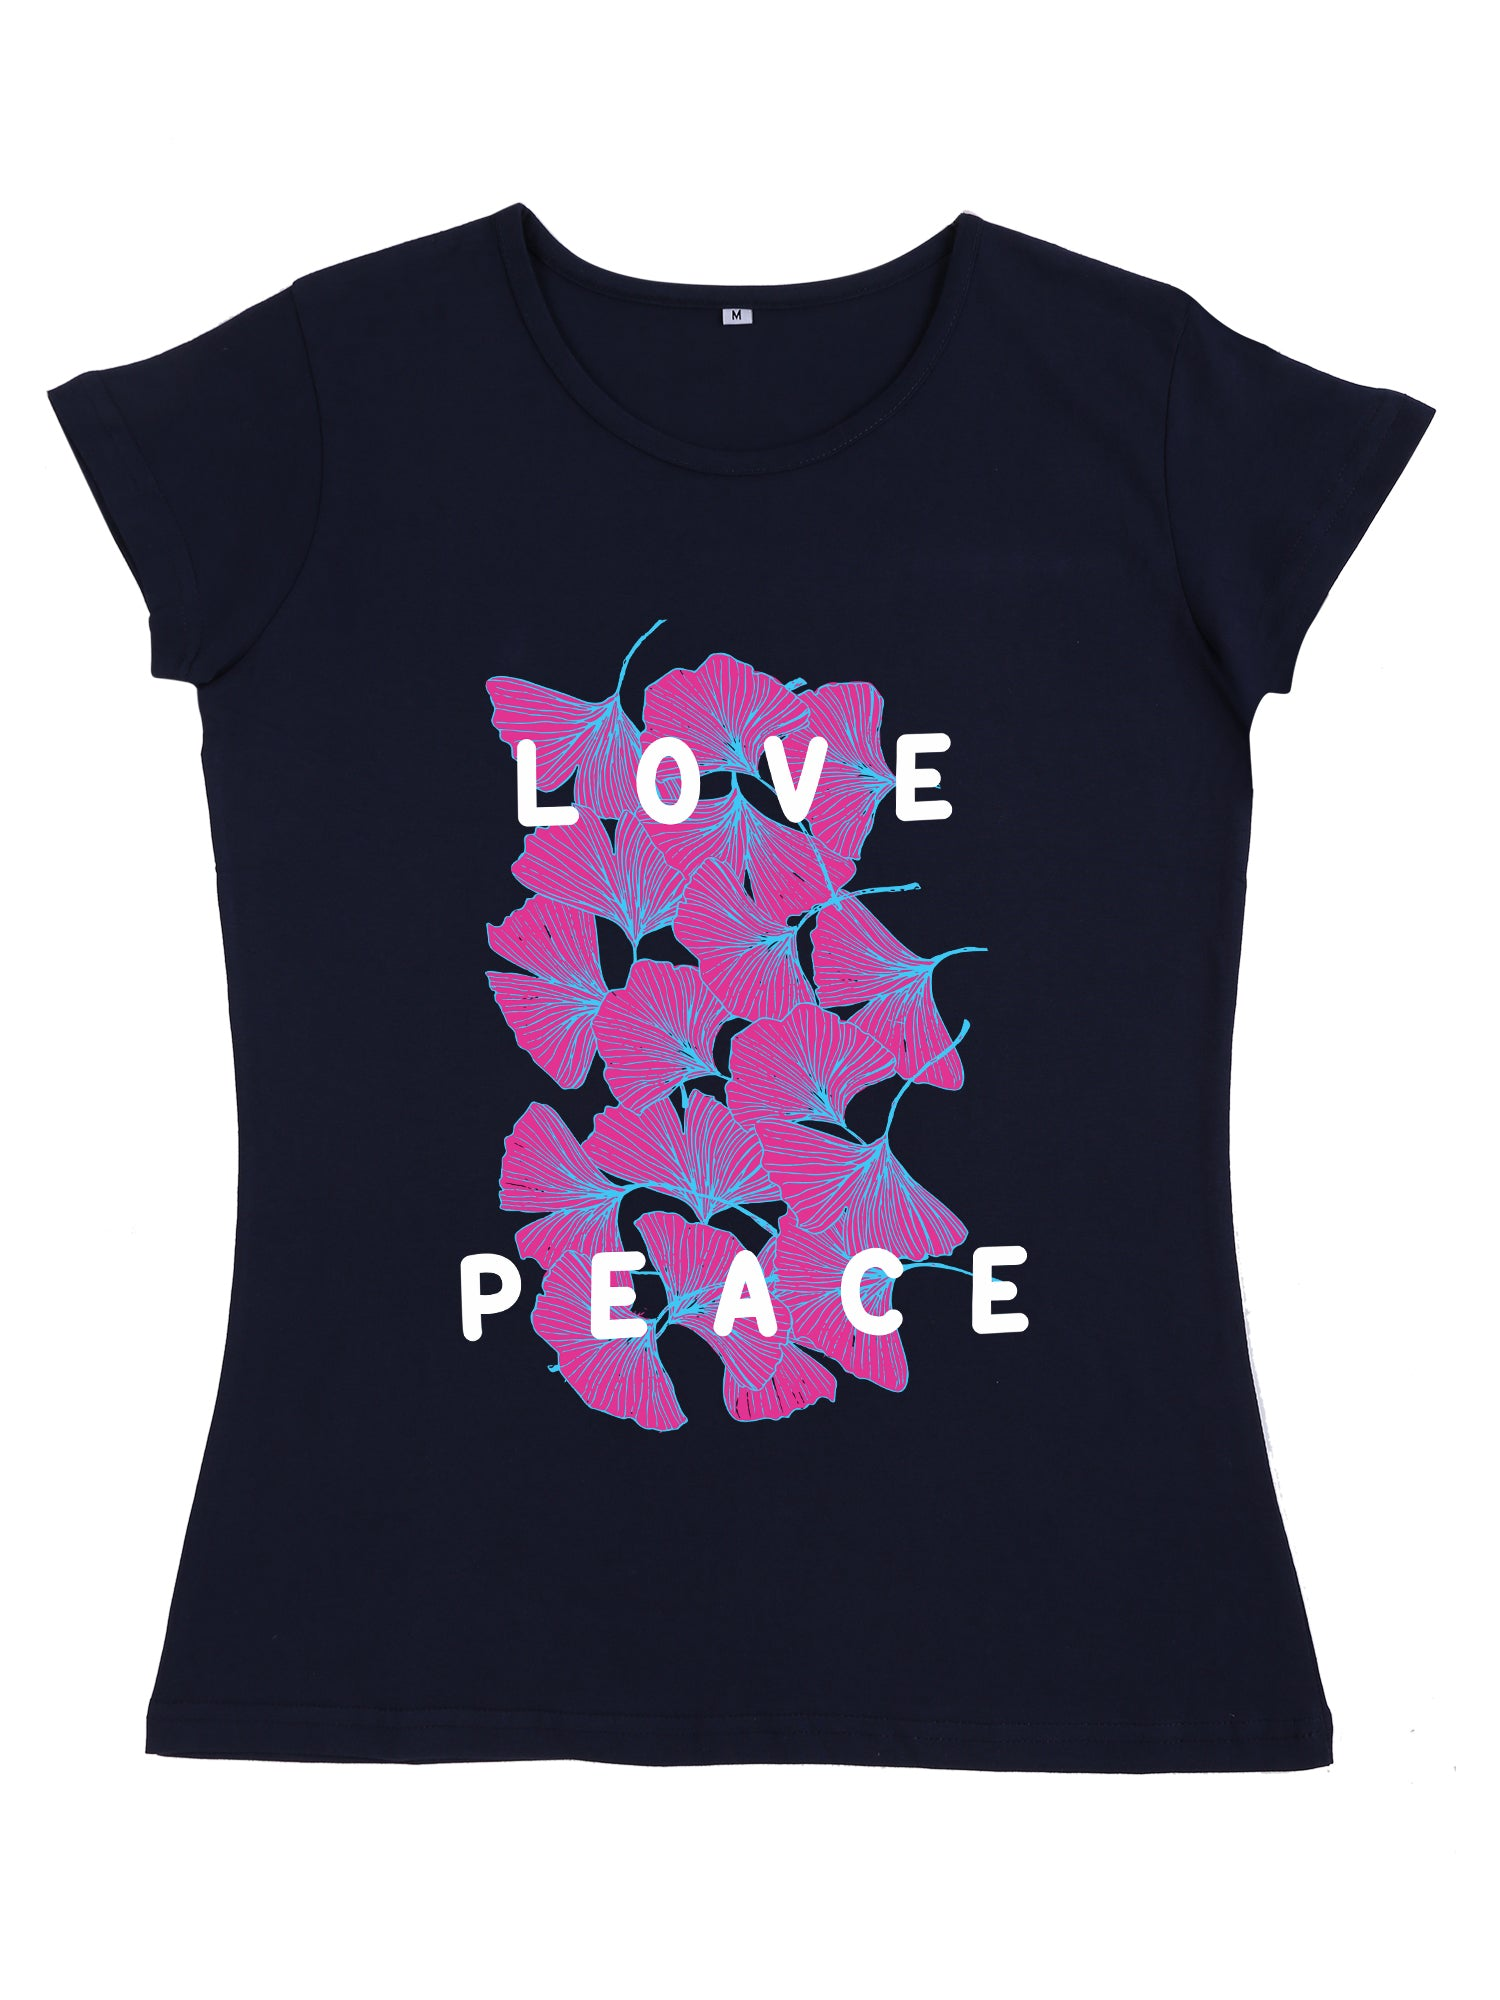 Bueno Life Women's Cotton Printed T-Shirt - Love Peace (Navy Blue)